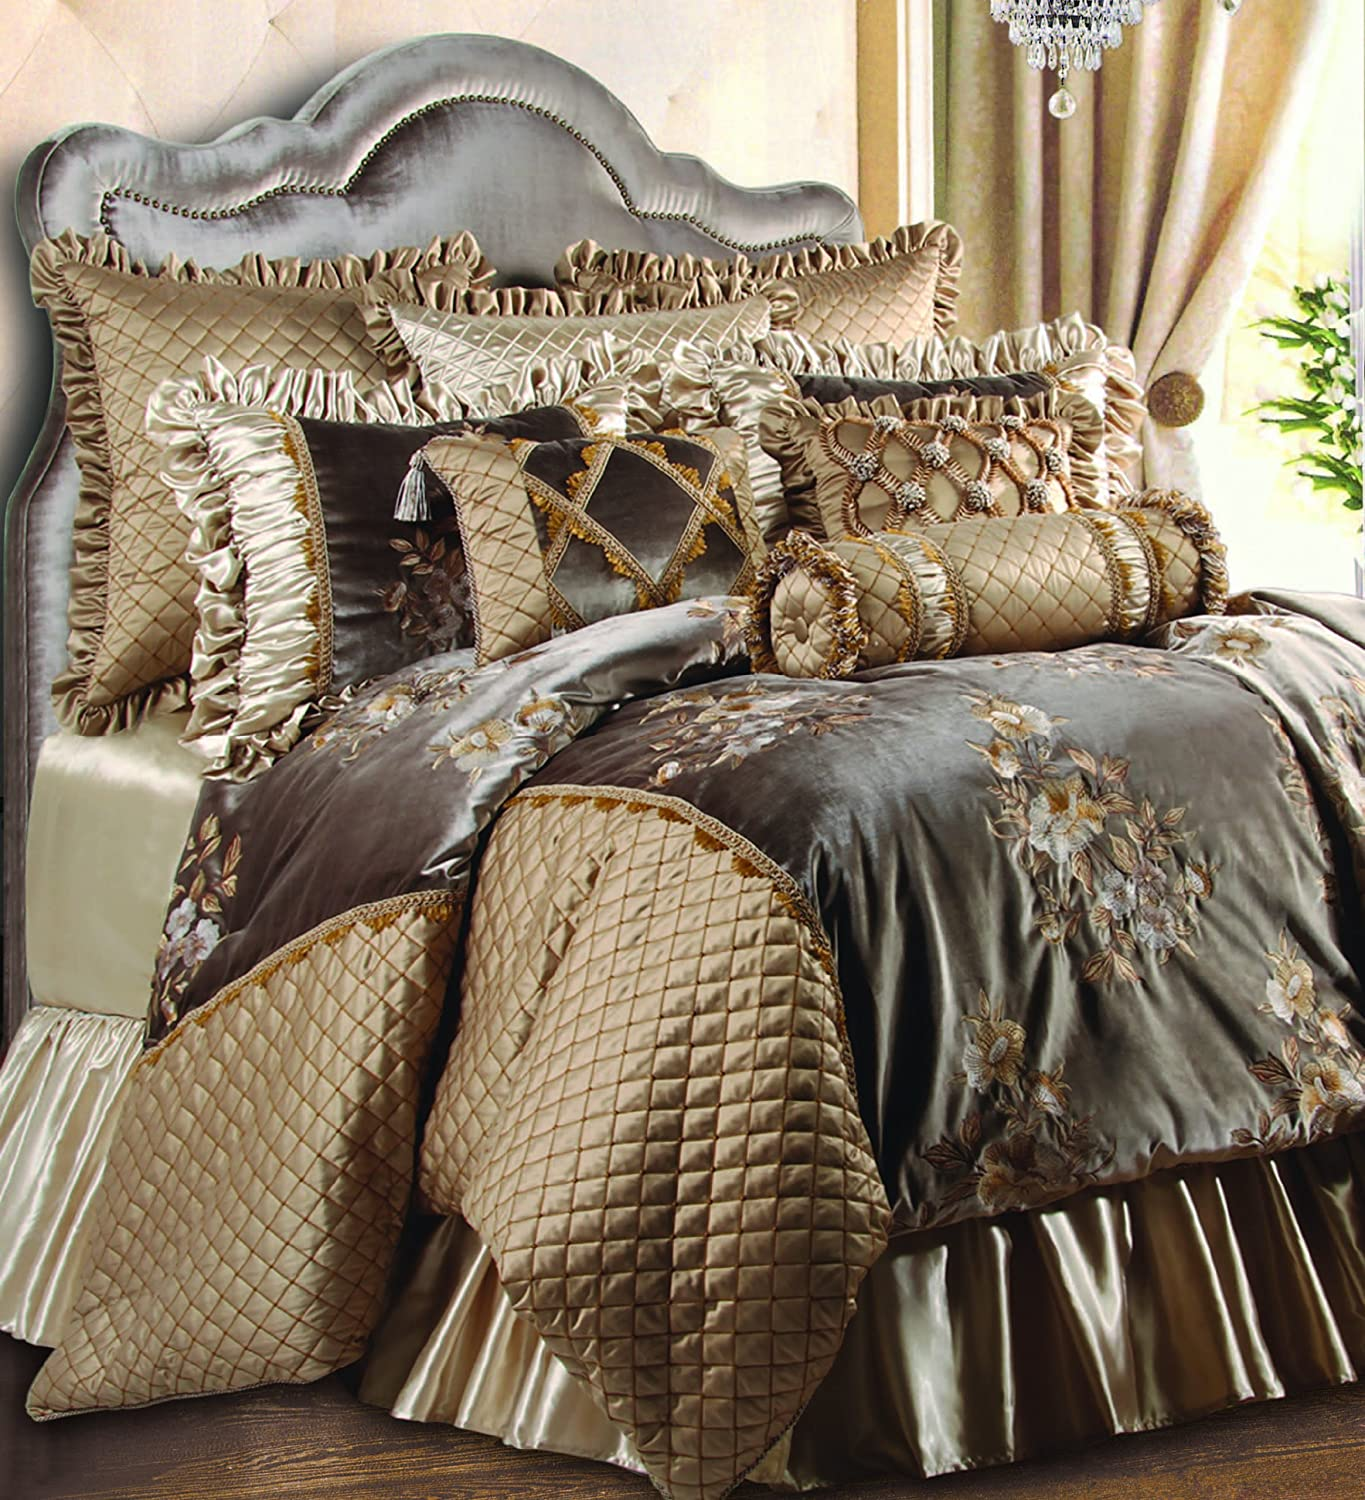 Luxury Bedding Ensembles